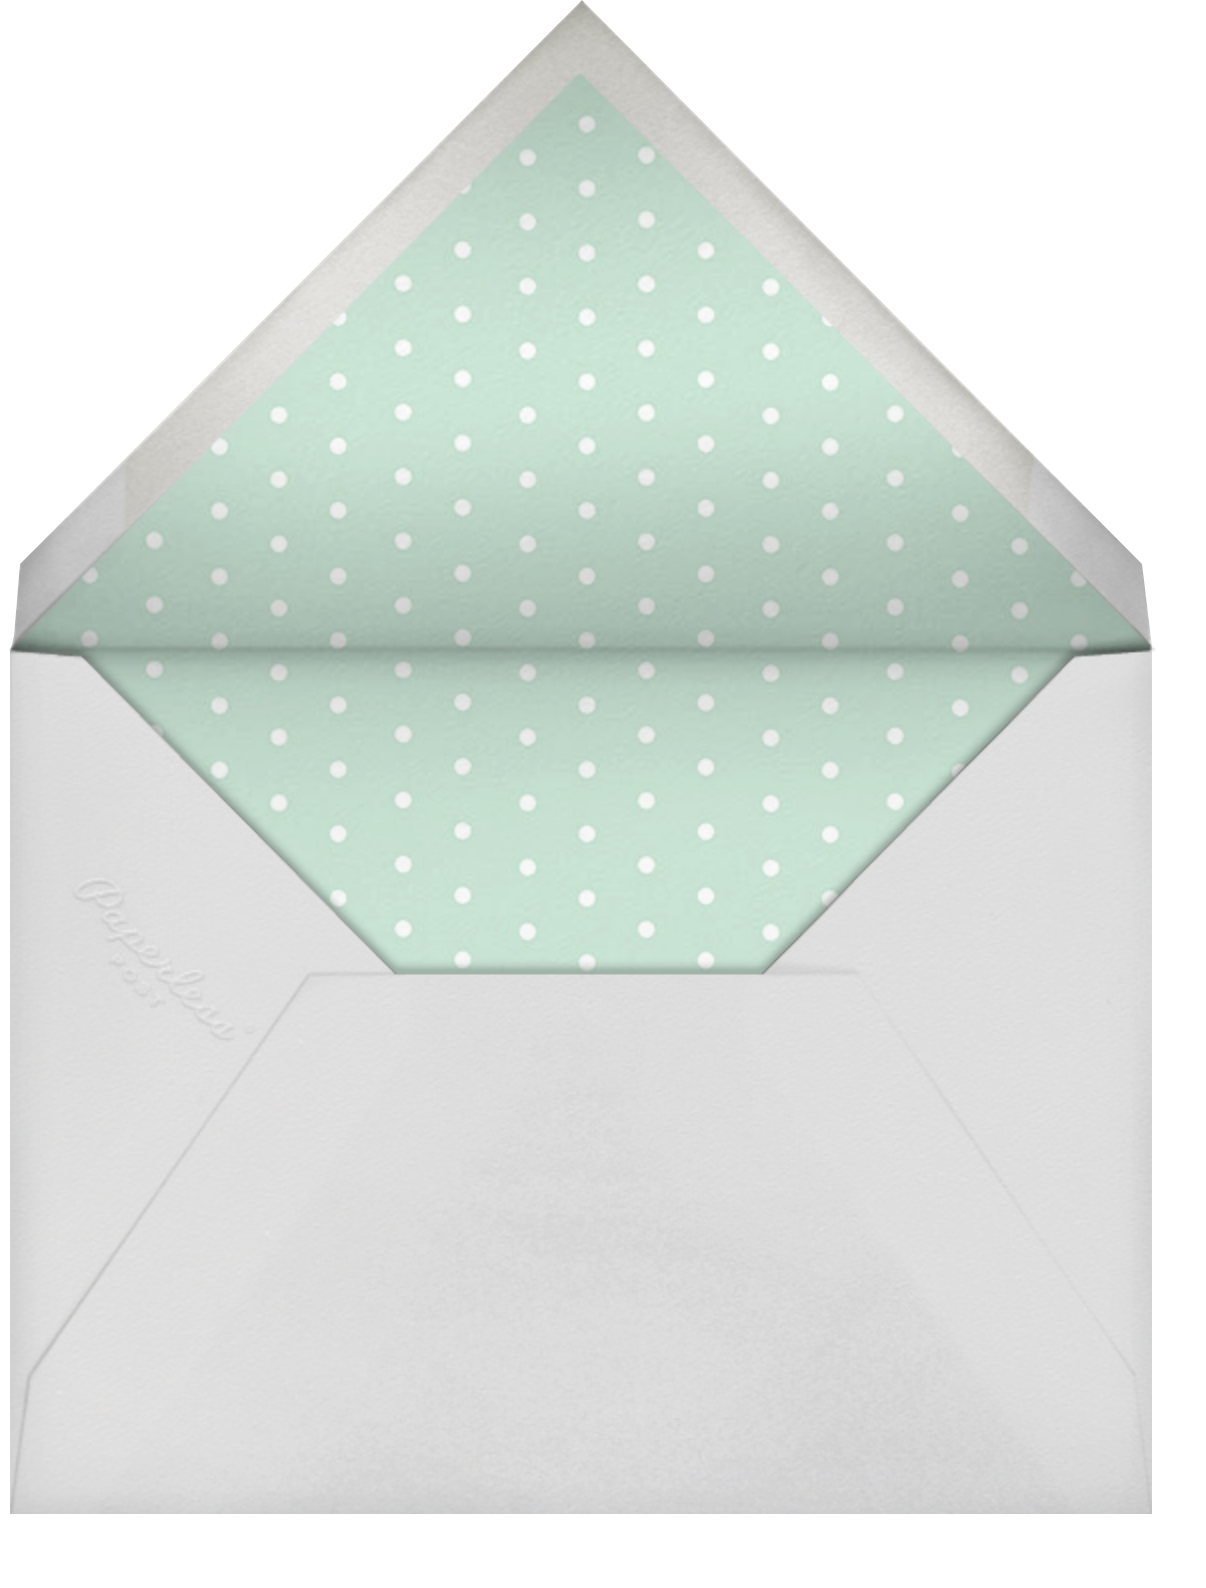 Bunny, Bear, and Baby (Photo) - Mint - Rifle Paper Co. - Woodland baby shower - envelope back